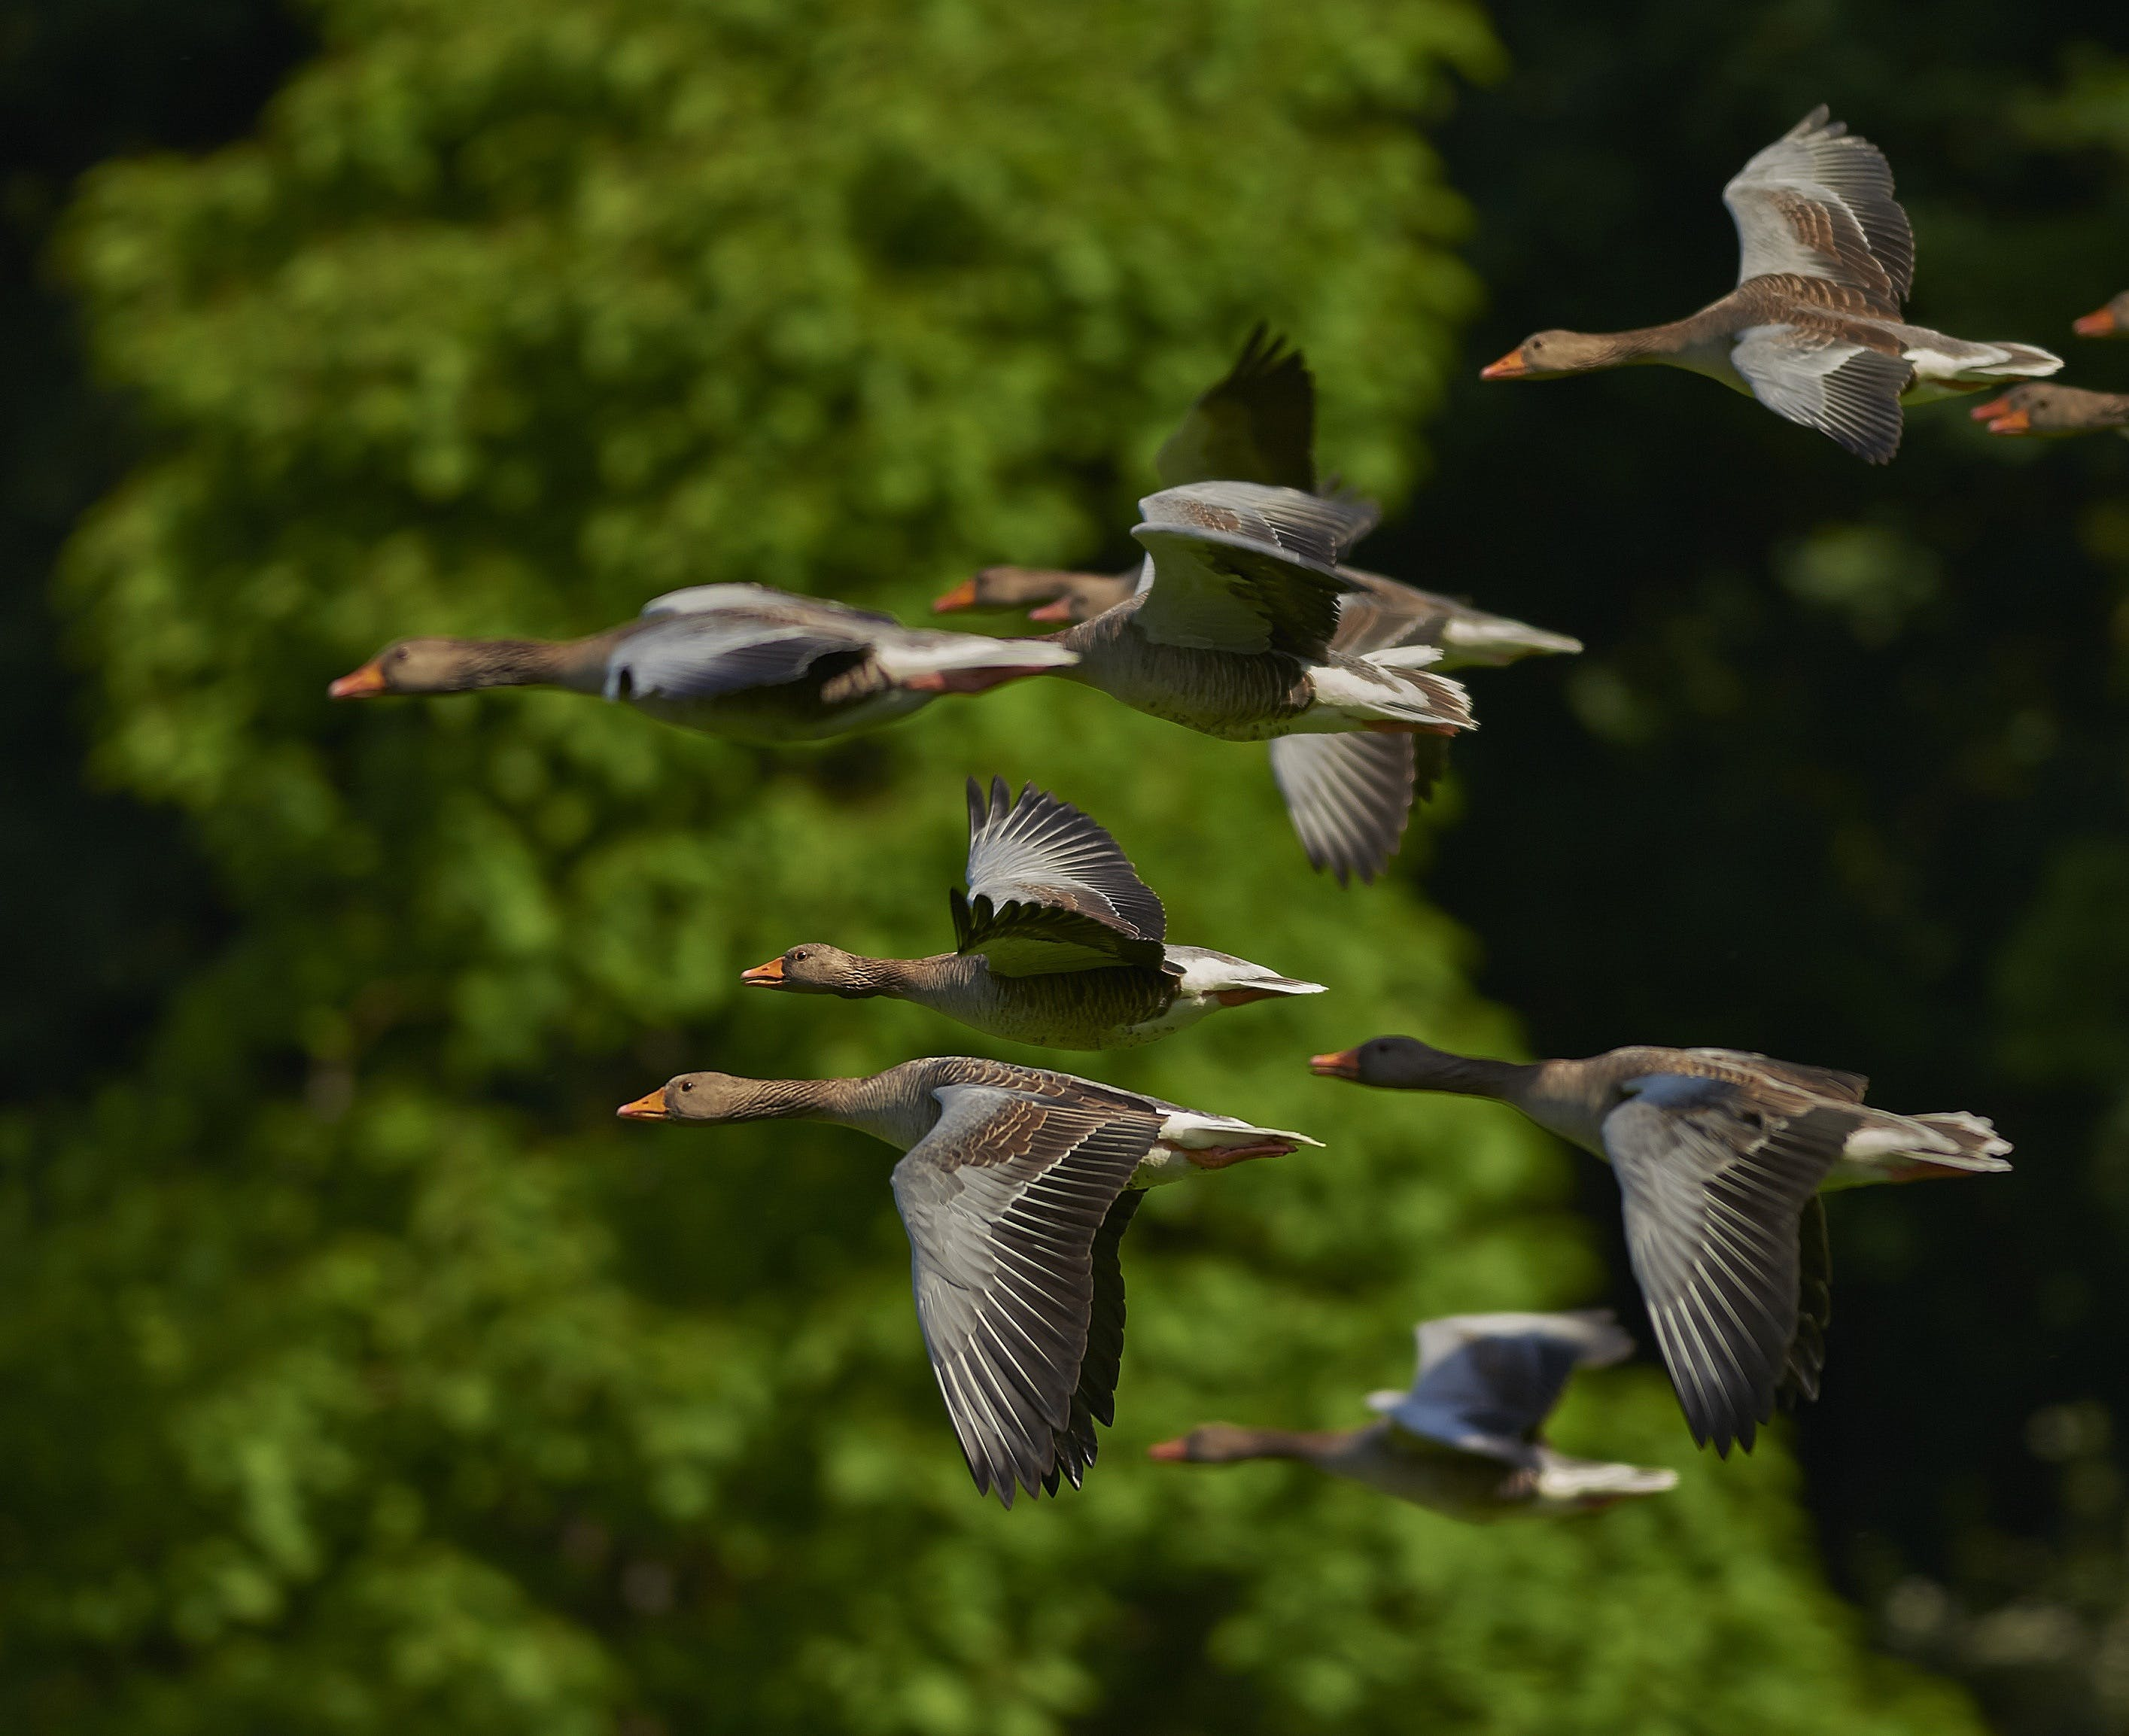 Grey Brown Bird Flying in a Flock